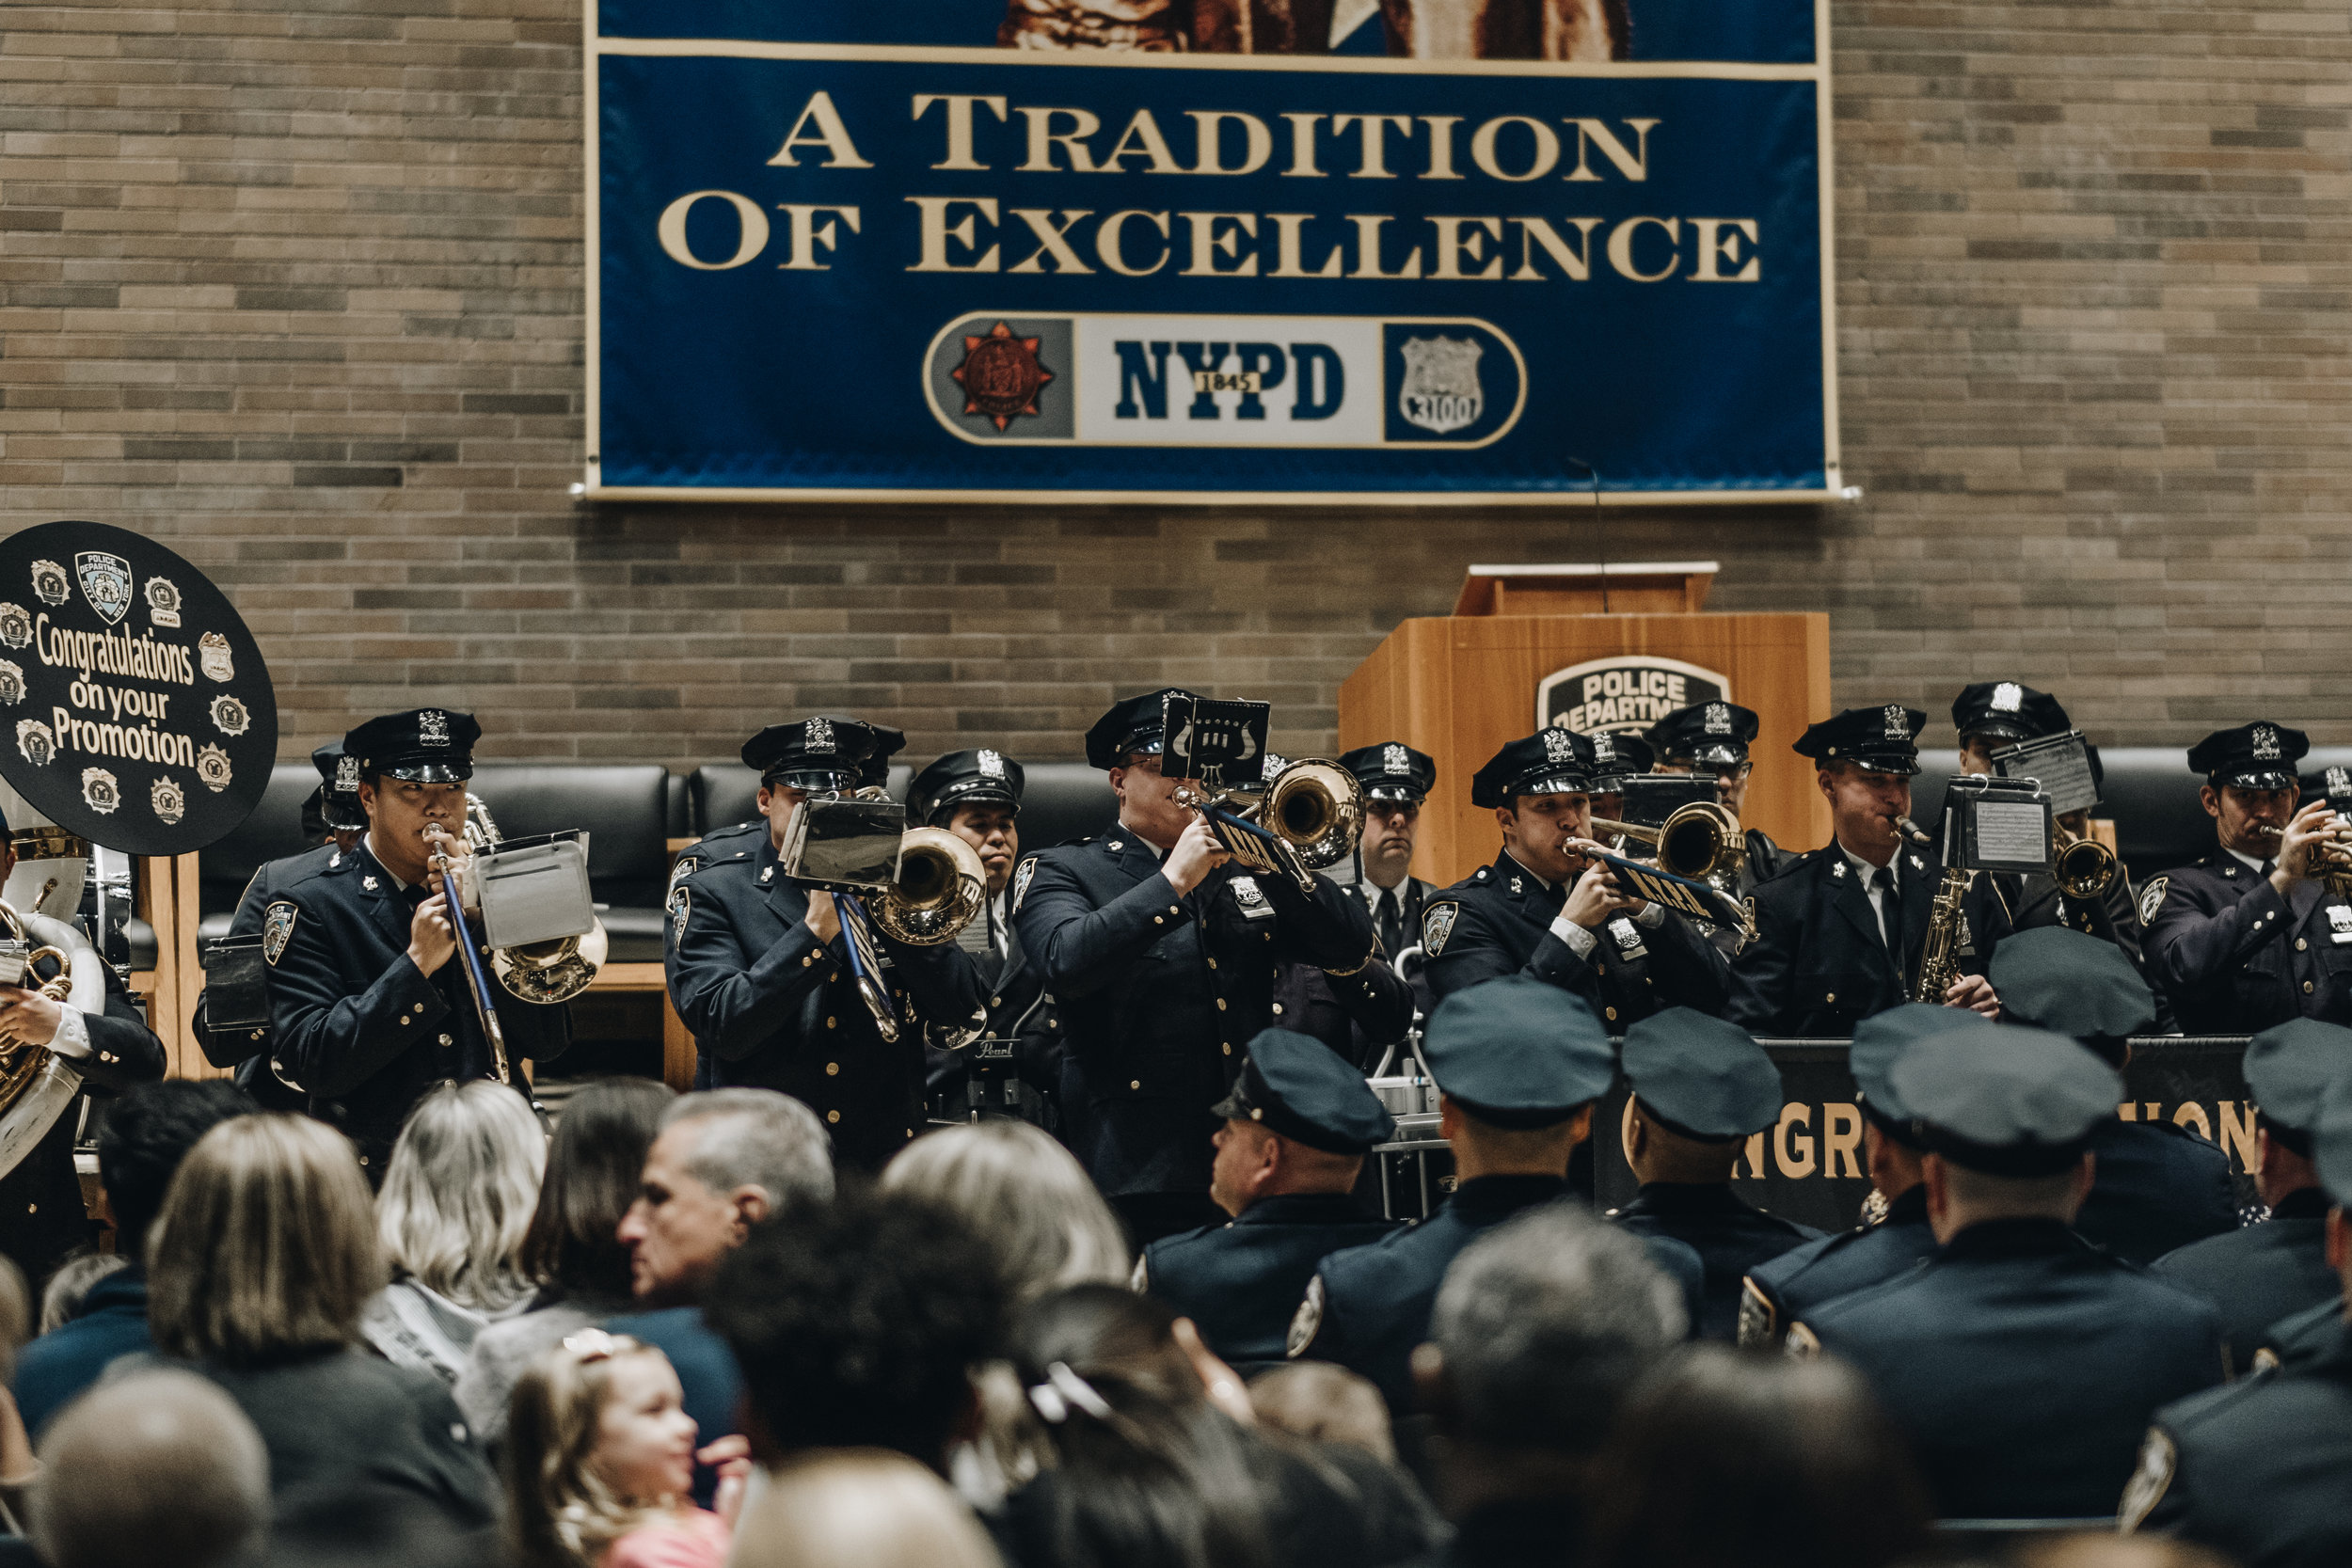 NYPD_Promotions-26.jpg